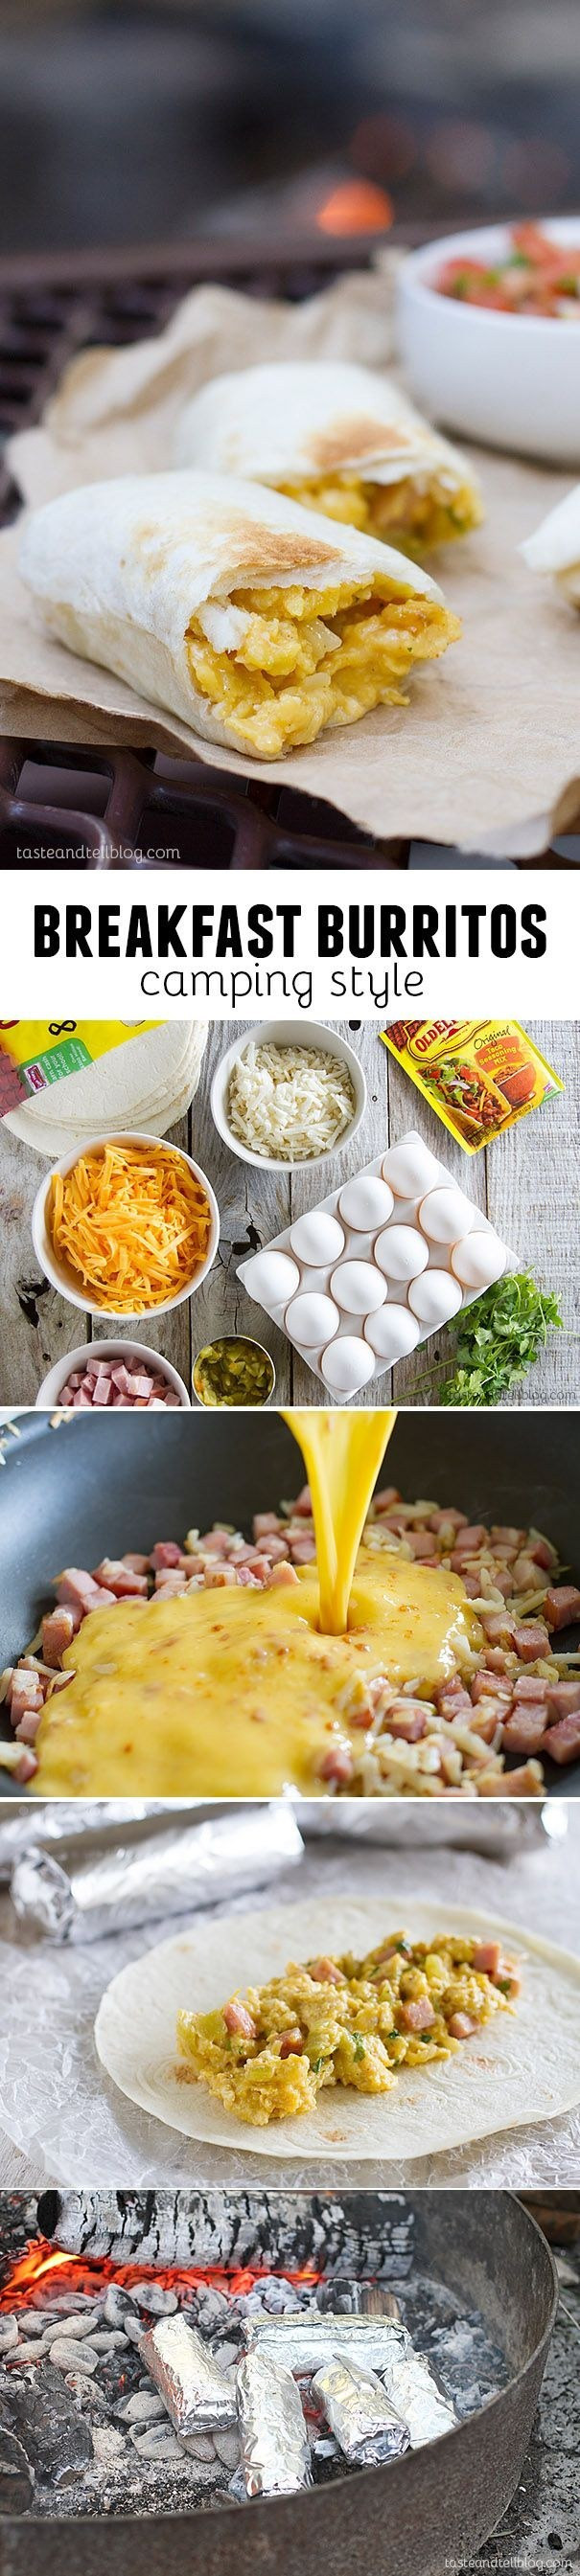 Breakfast Burritos For Camping  18 Breakfast Burritos Worth Waking Up For You Be Fit